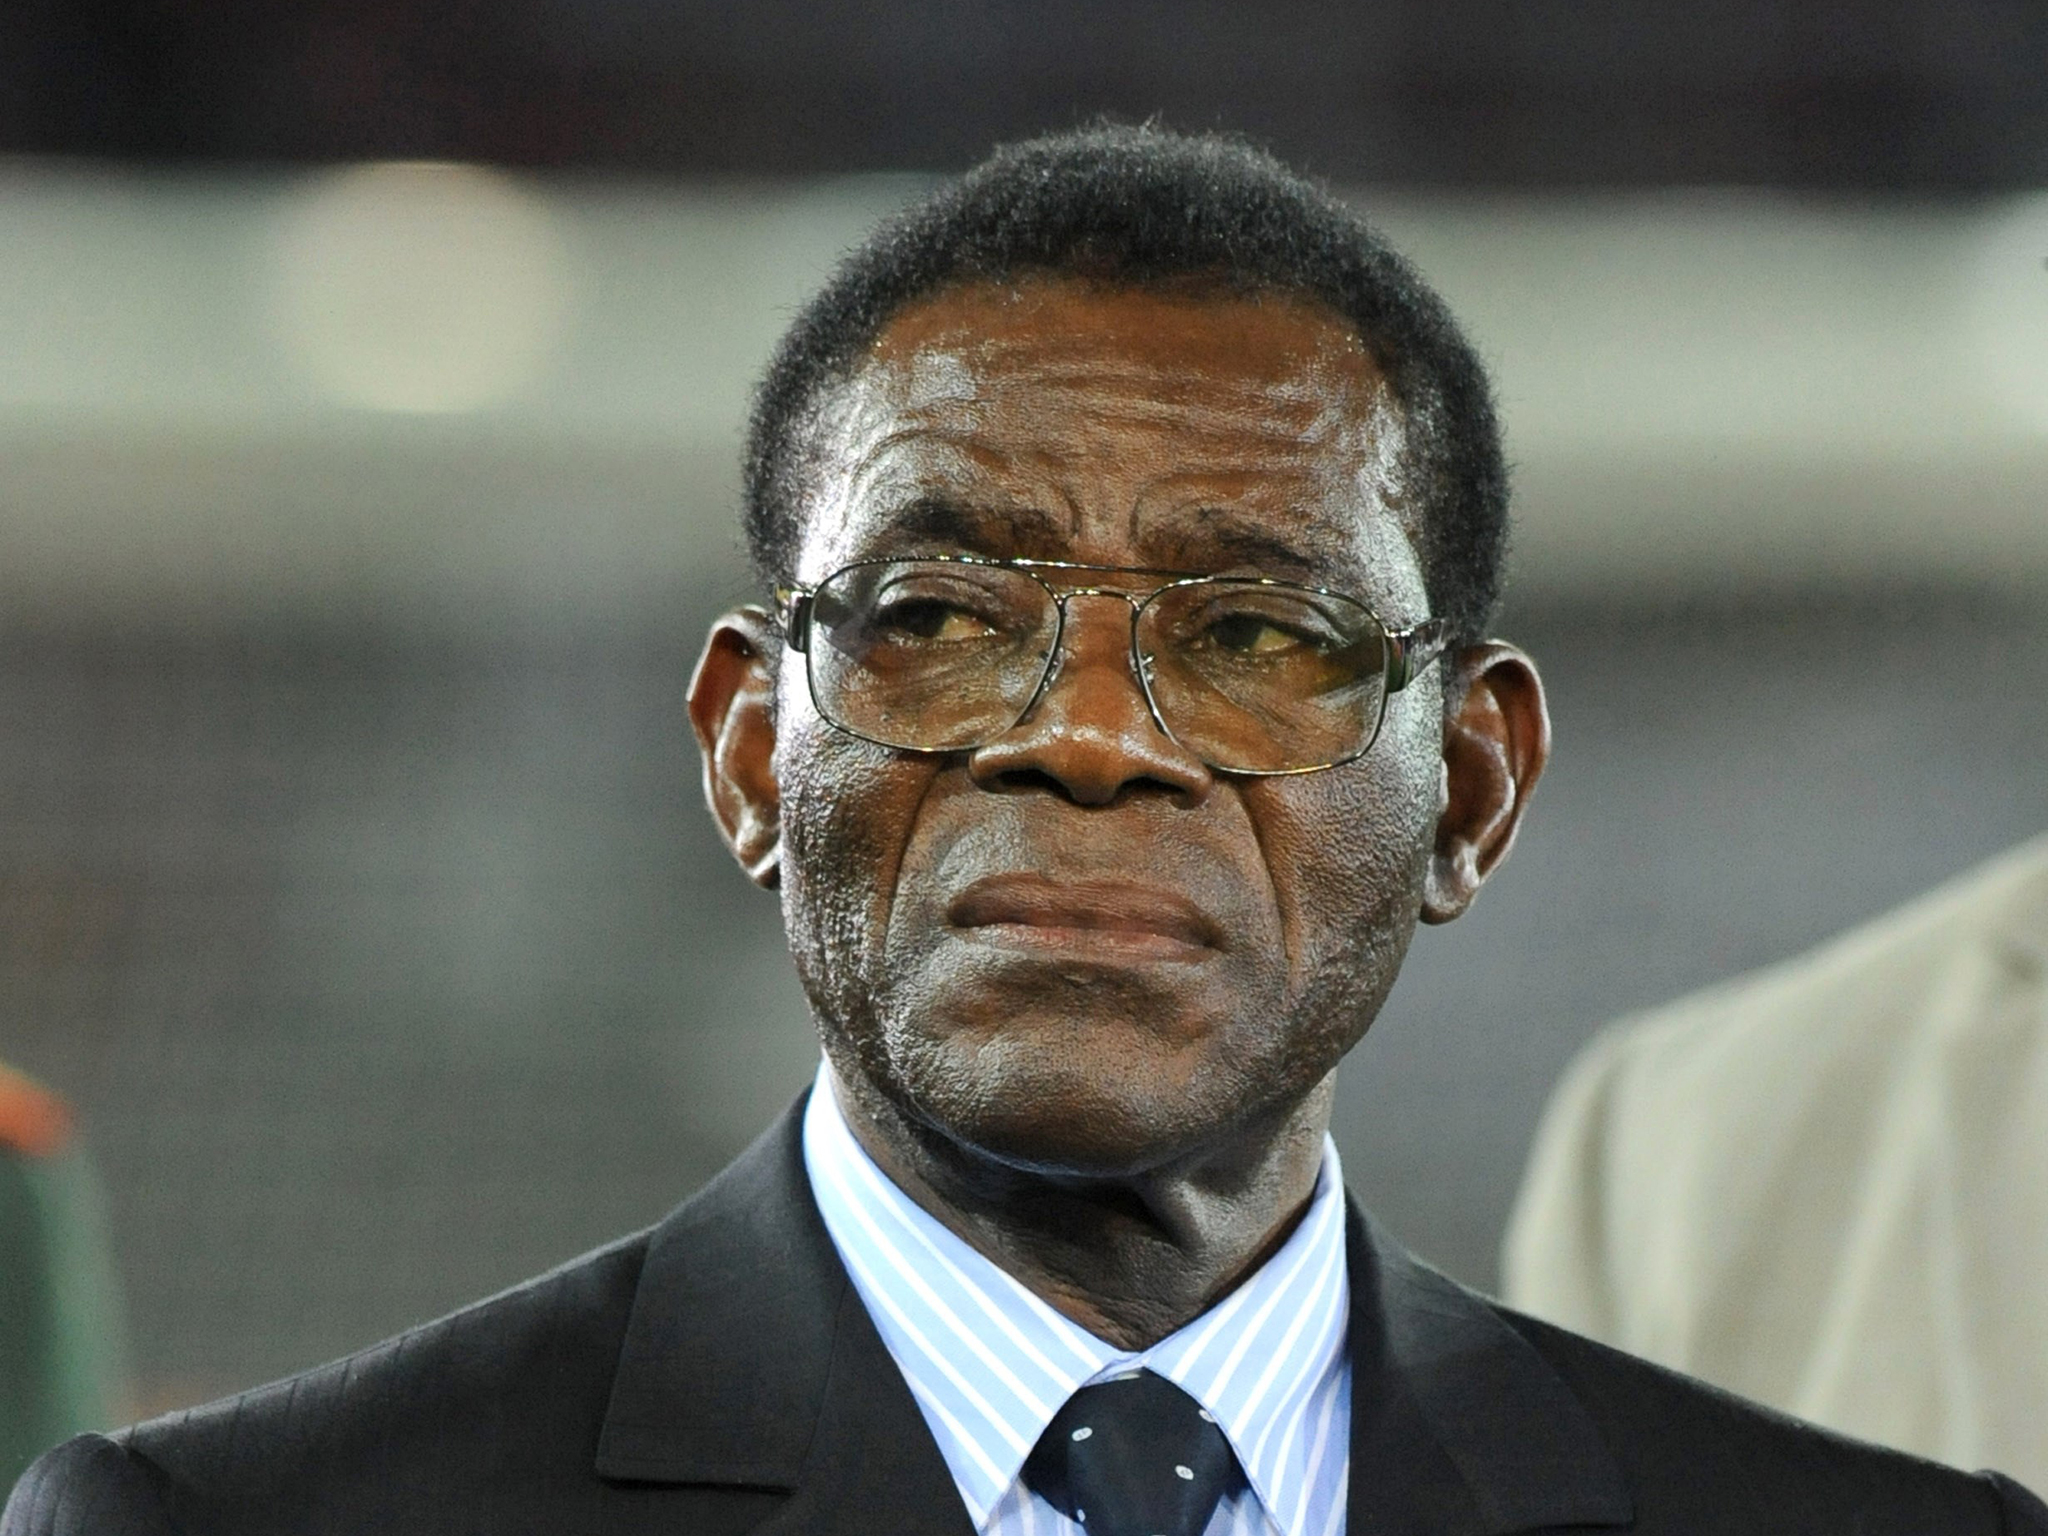 Obiang-getty